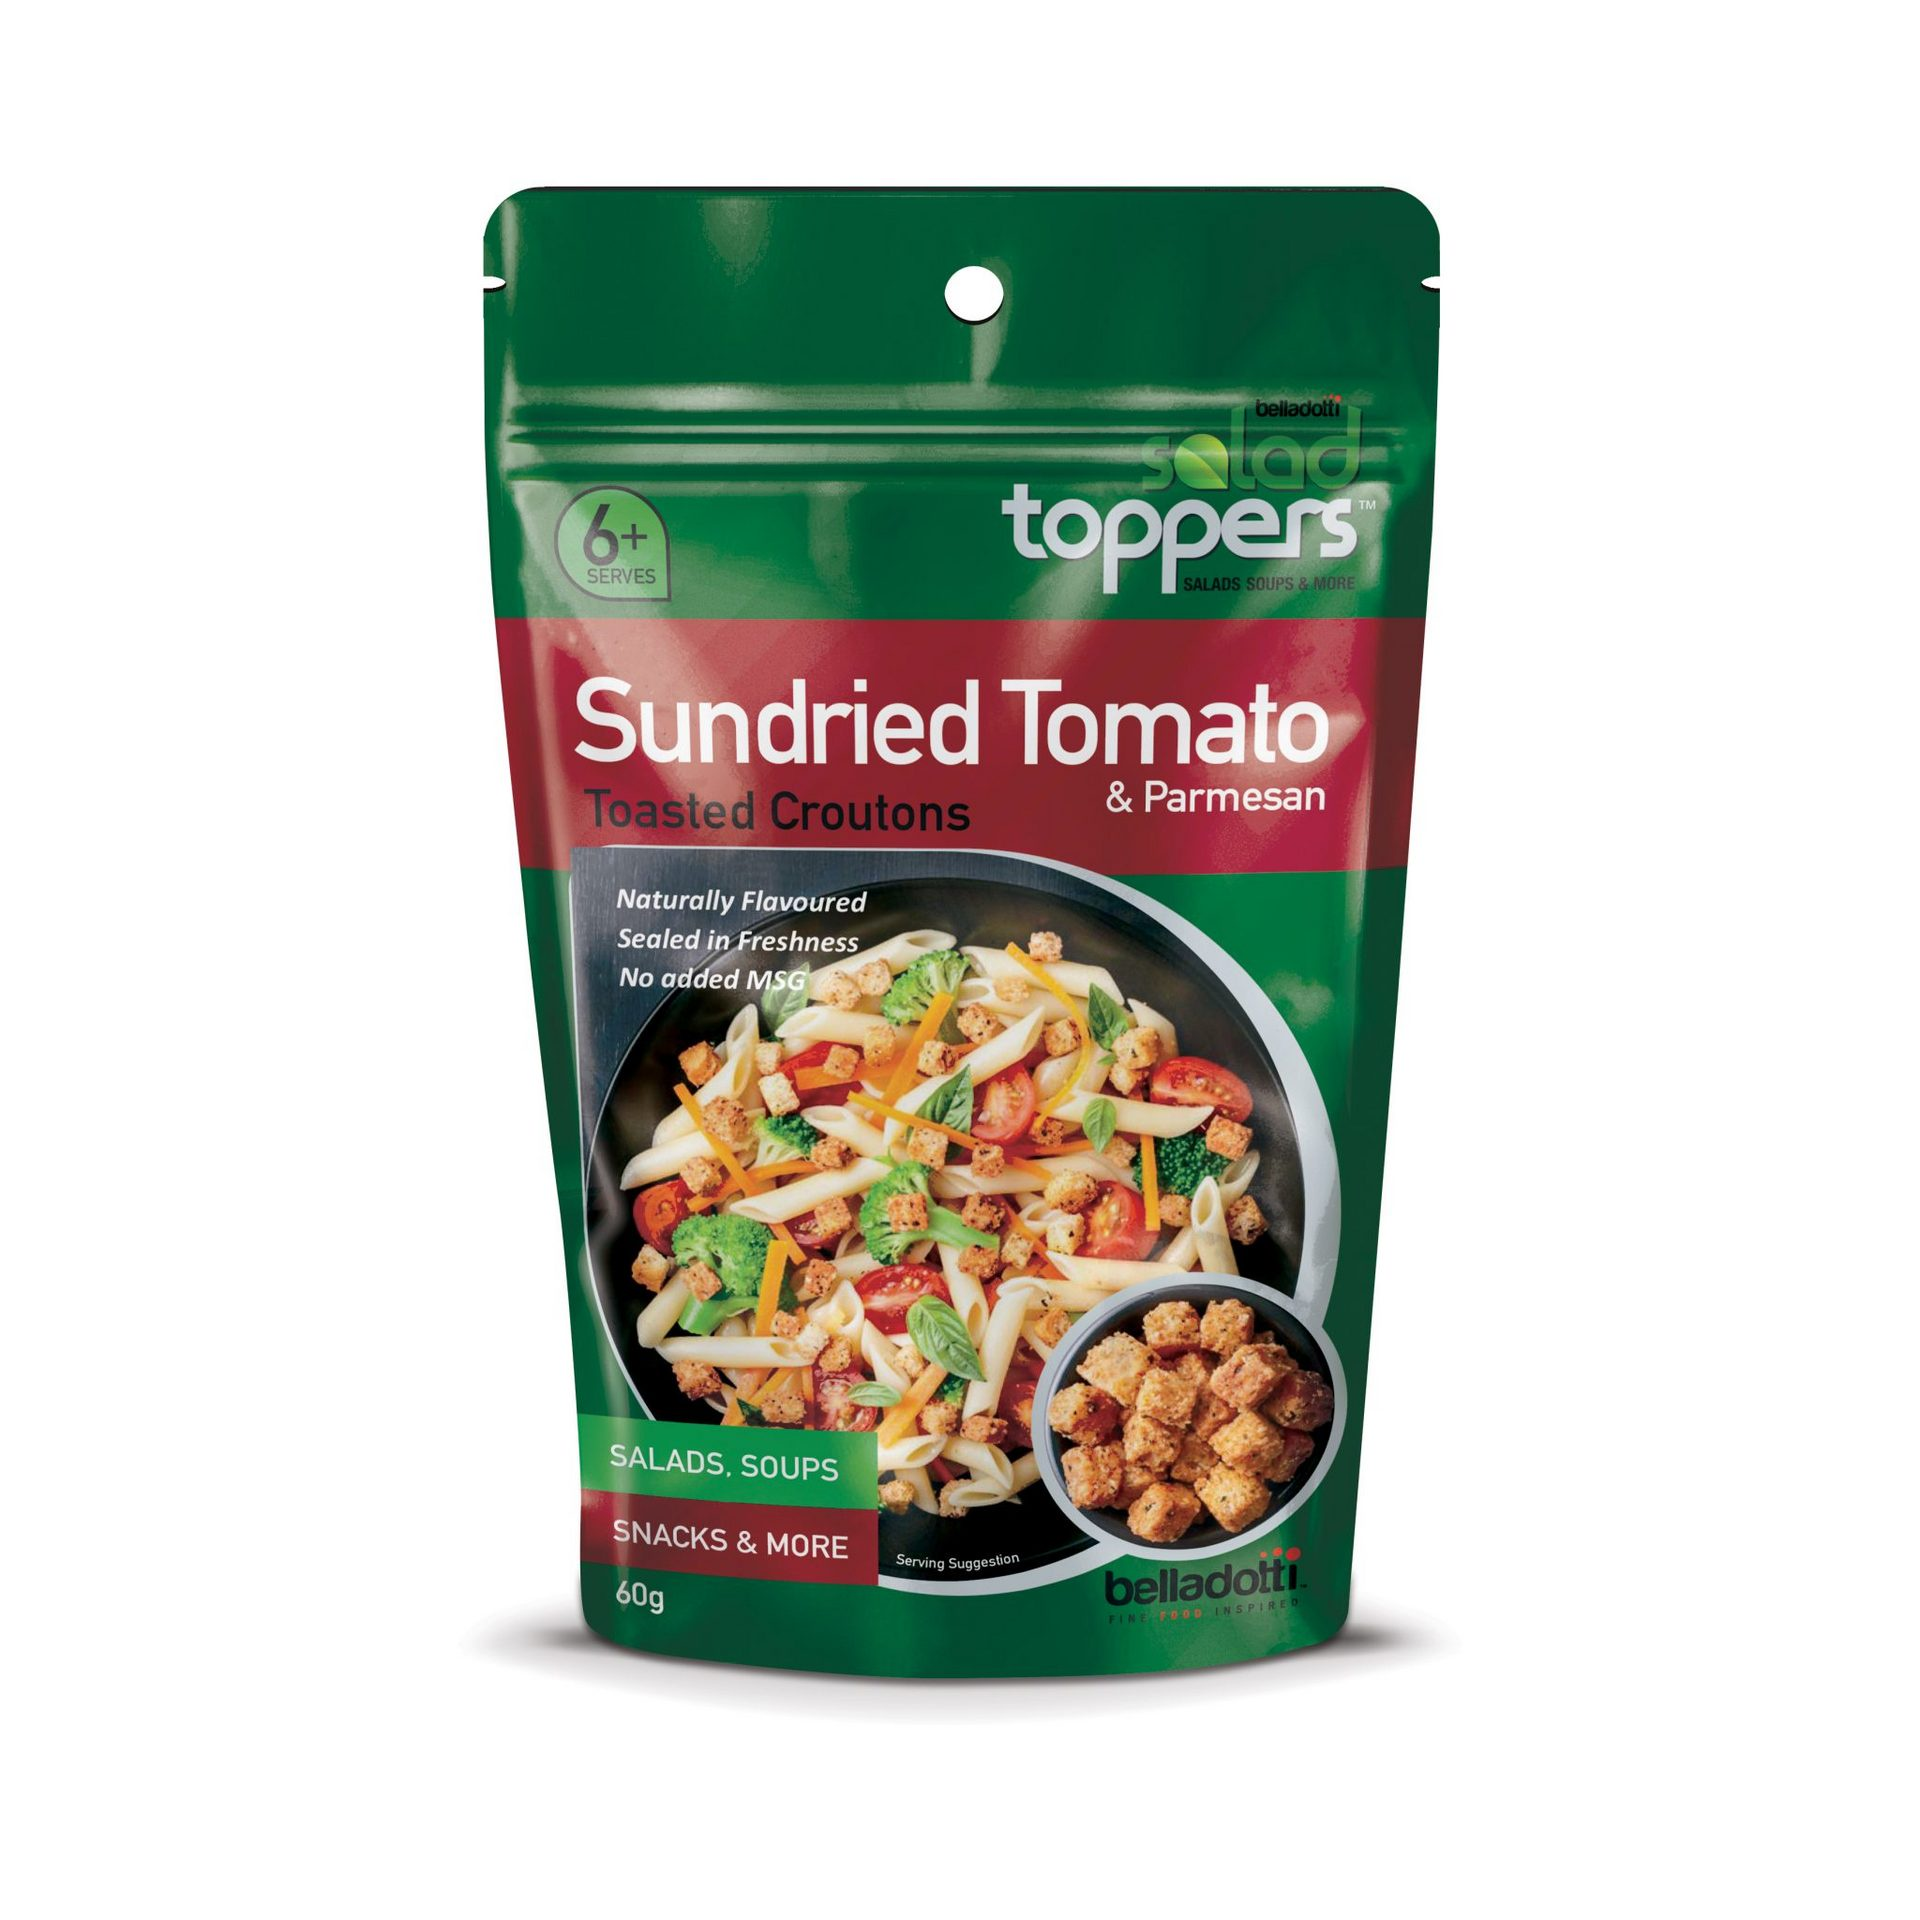 Salad Toppers - Sundried Tomato & Parmesan